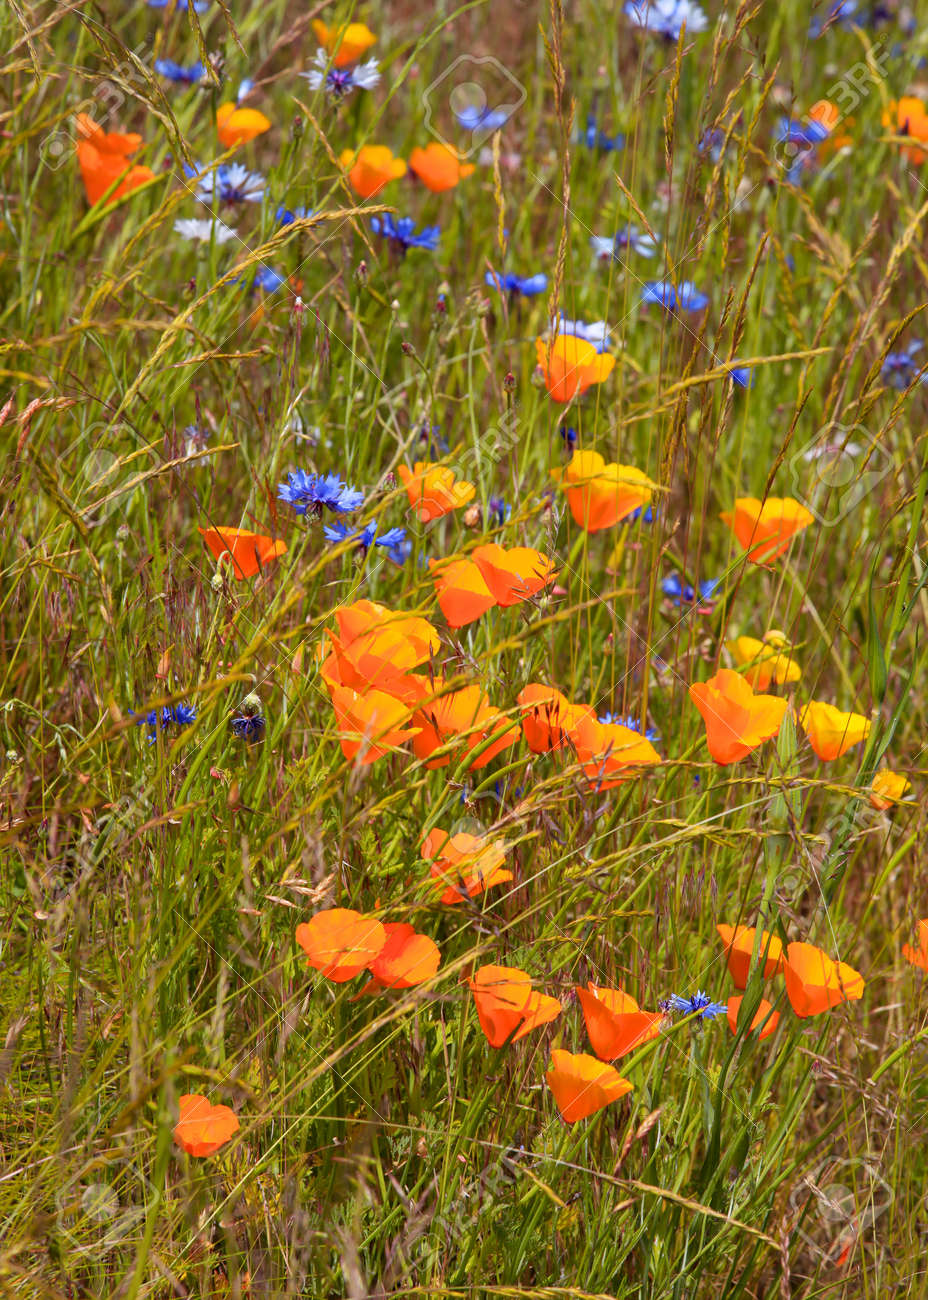 Orange Poppy Flowers Growing Wild In The Grass Stock Photo Picture